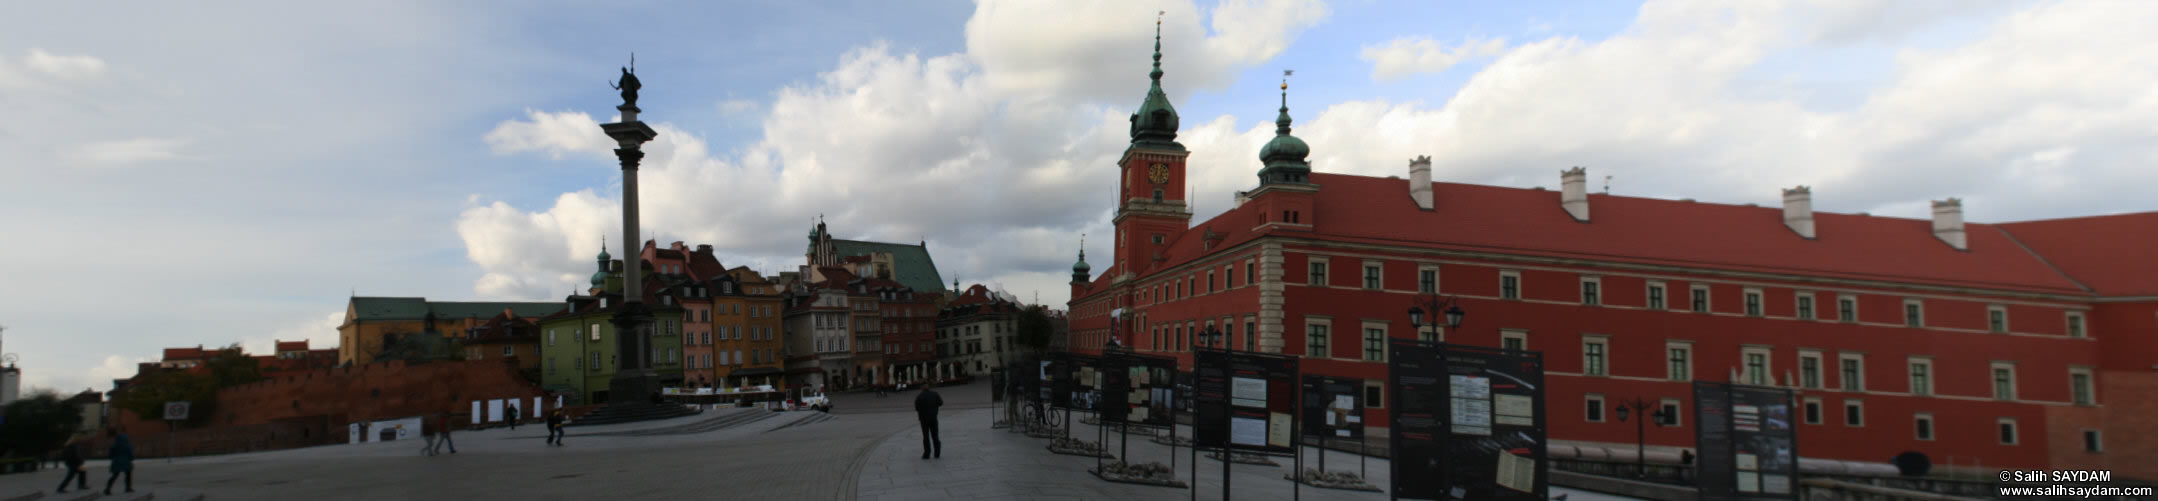 Old Town Panorama 11 (Castle Square, Warsaw, Poland)